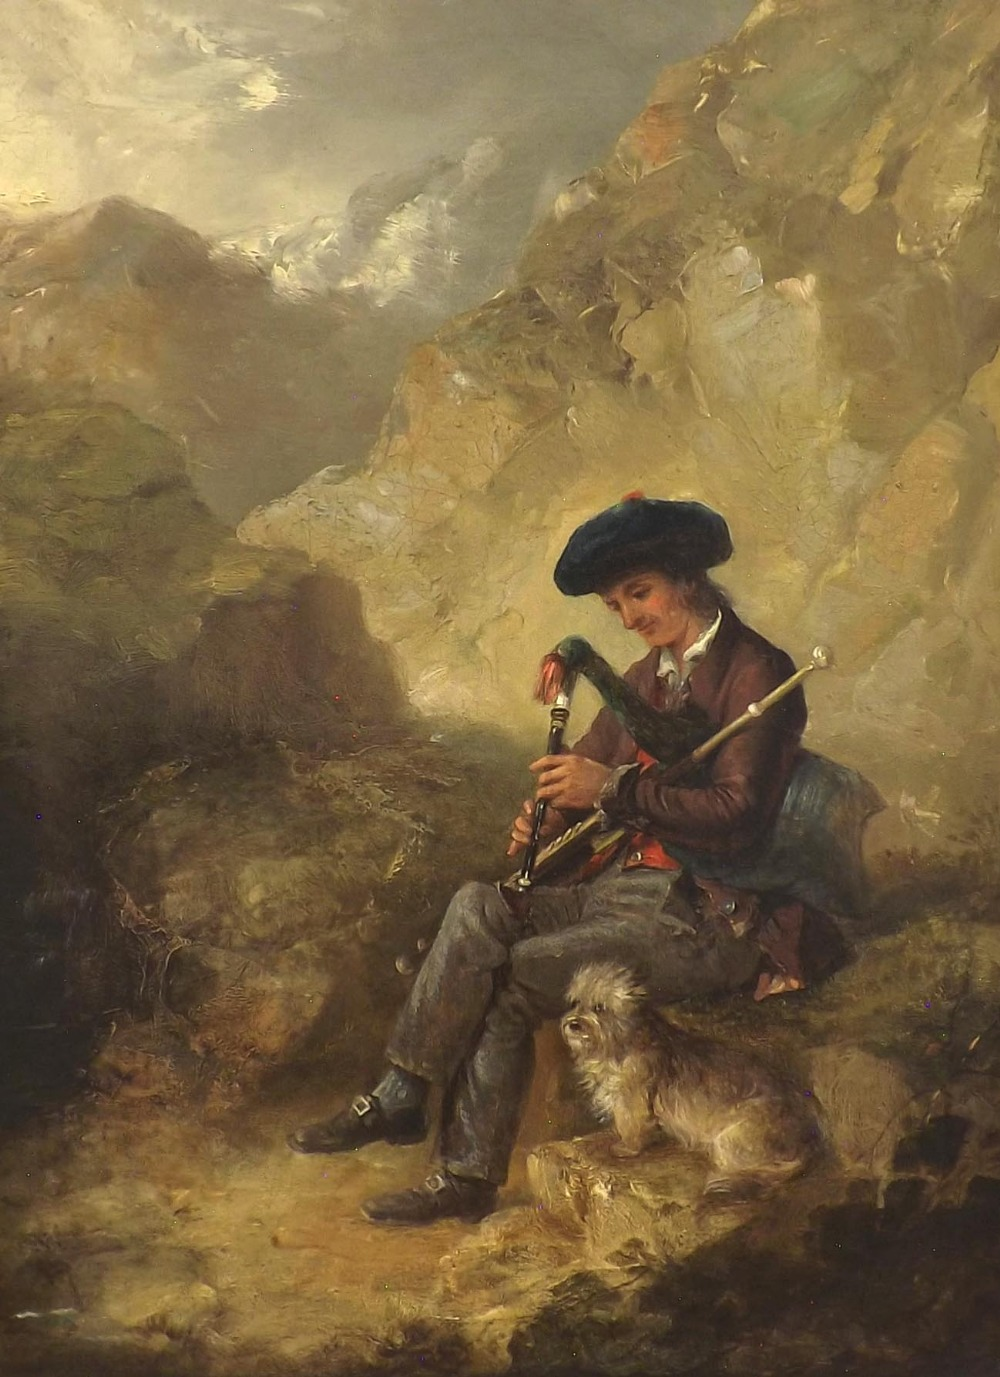 Attributed to Edward Robert Smyth (1810-1899) - boy seated on rocks playing bagpipes, a dog by his